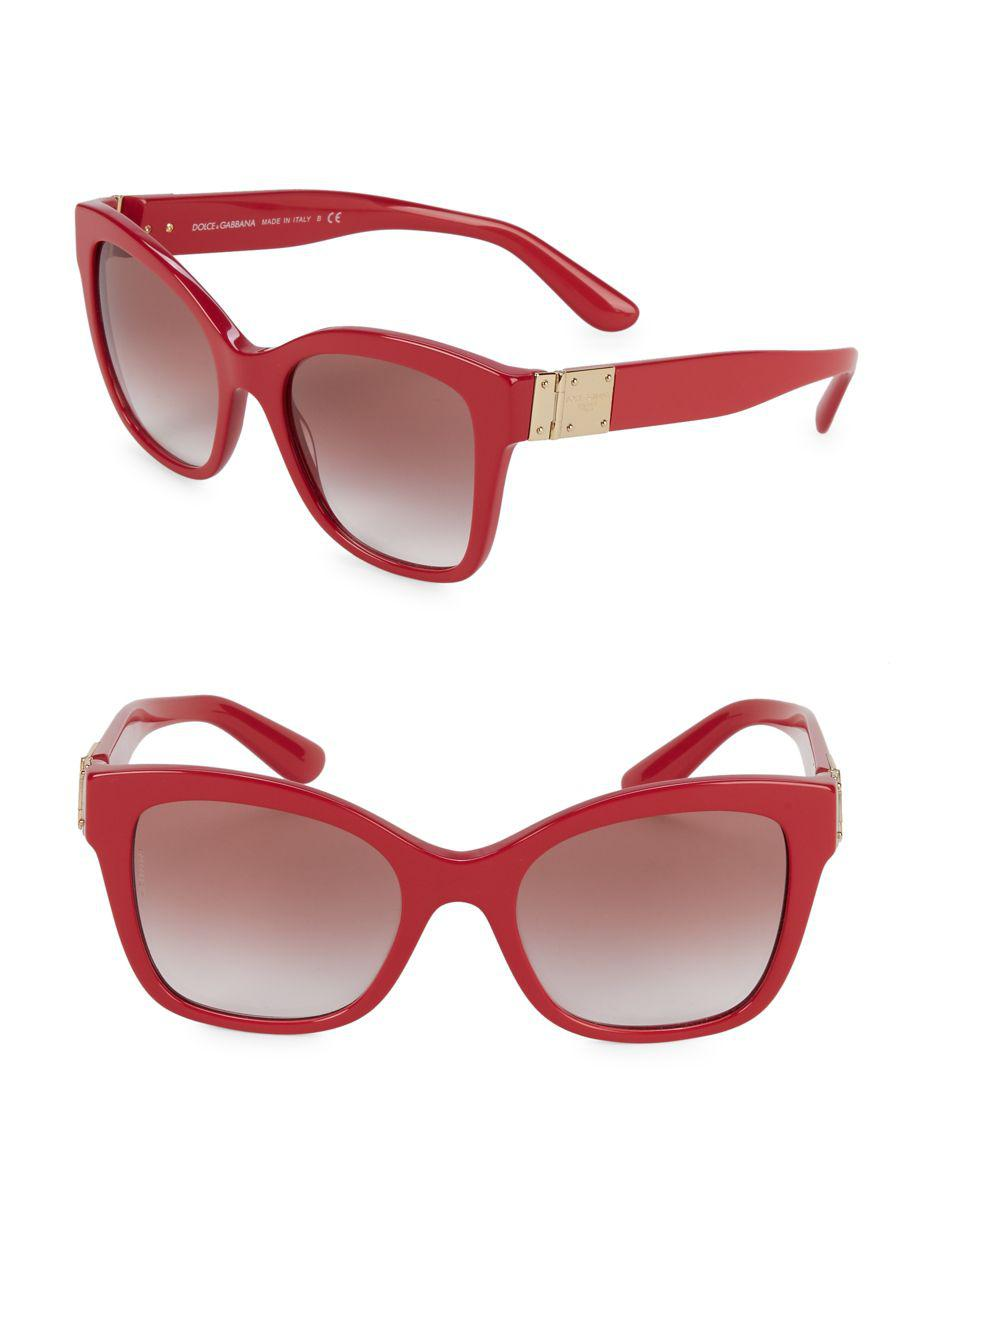 0207da46b26 Dolce   Gabbana Dg4309 53mm Squared Cateye Sunglasses in Red - Lyst